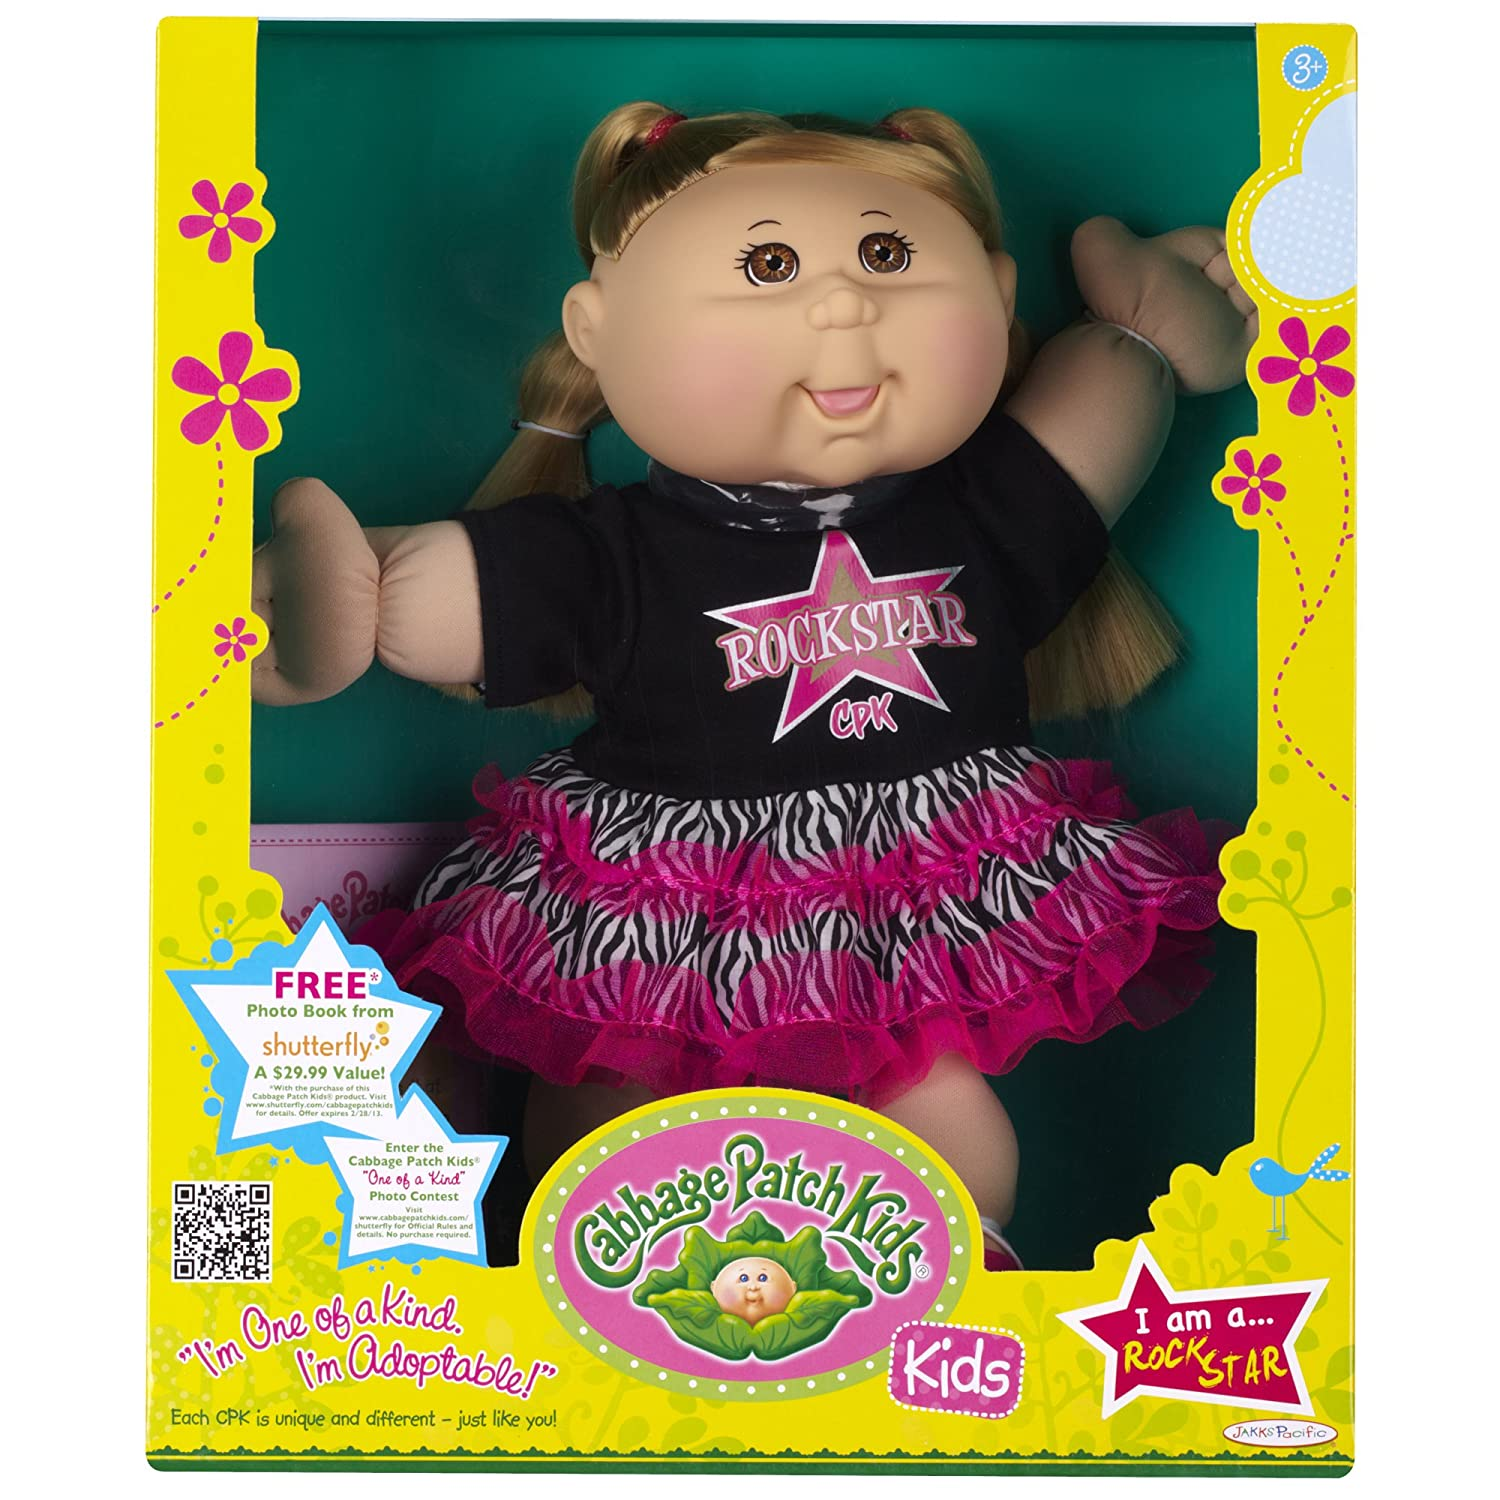 Rockstar Cabbage Patch Doll Musictutor55 S Blog